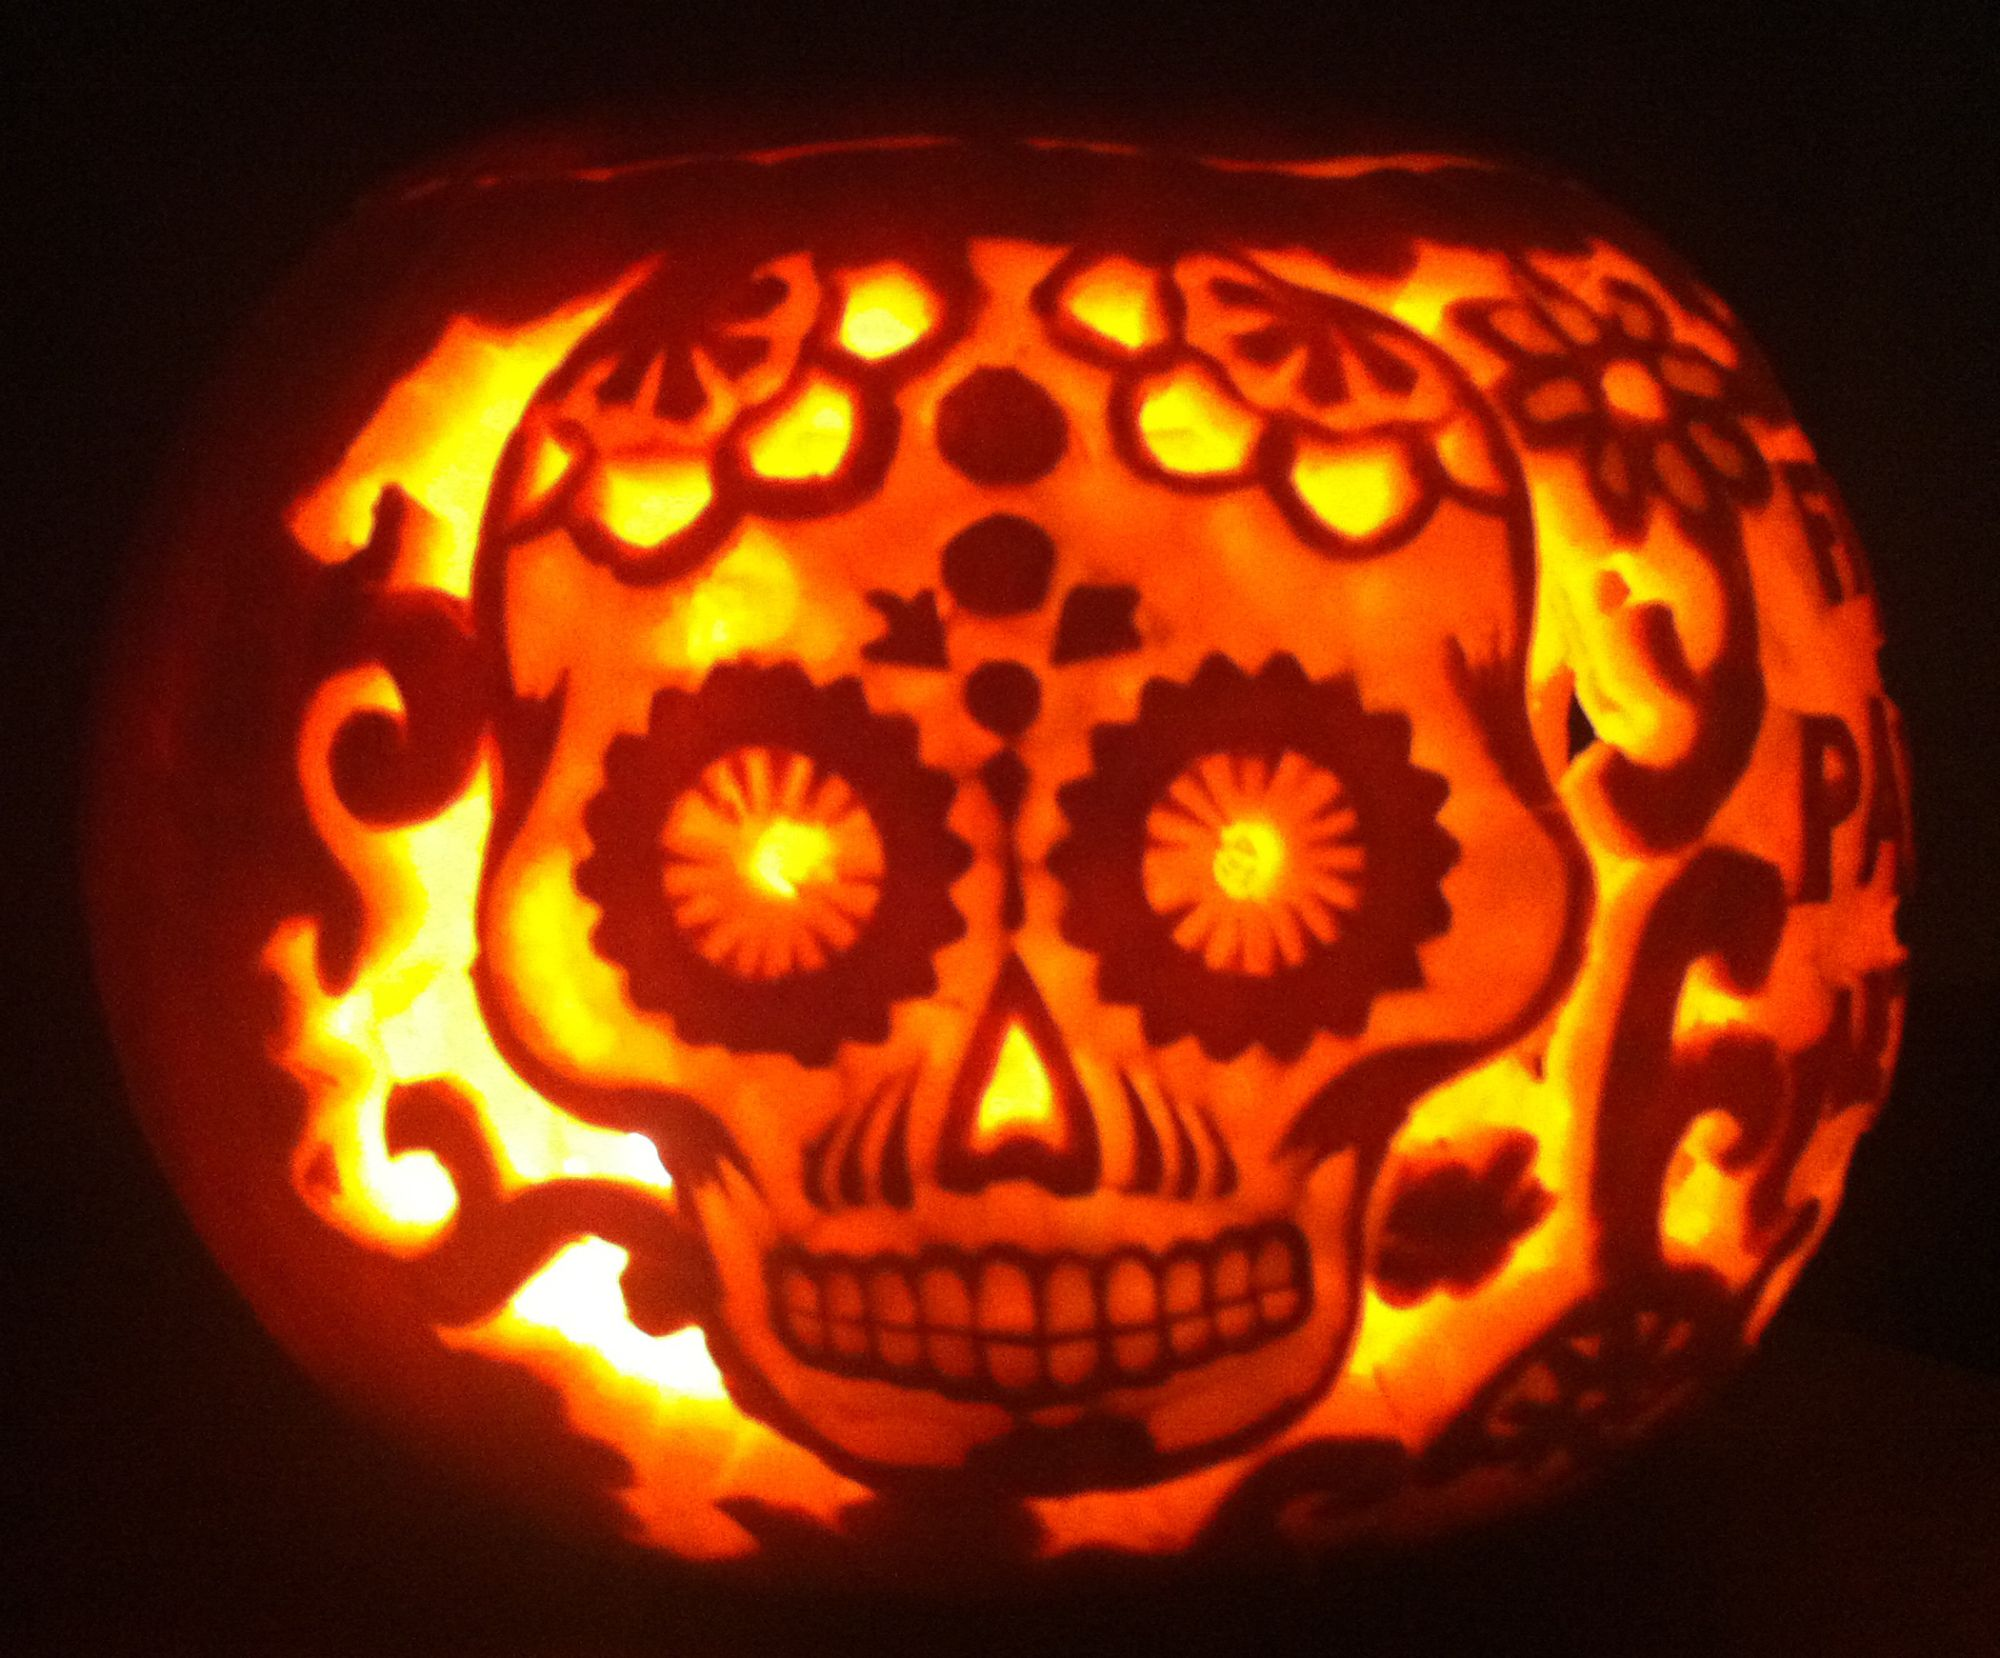 halloween pumpkin carved with day of the dead skull and pattern rh pinterest com day of the dead skull pumpkin carving day of the dead pumpkin carving easy